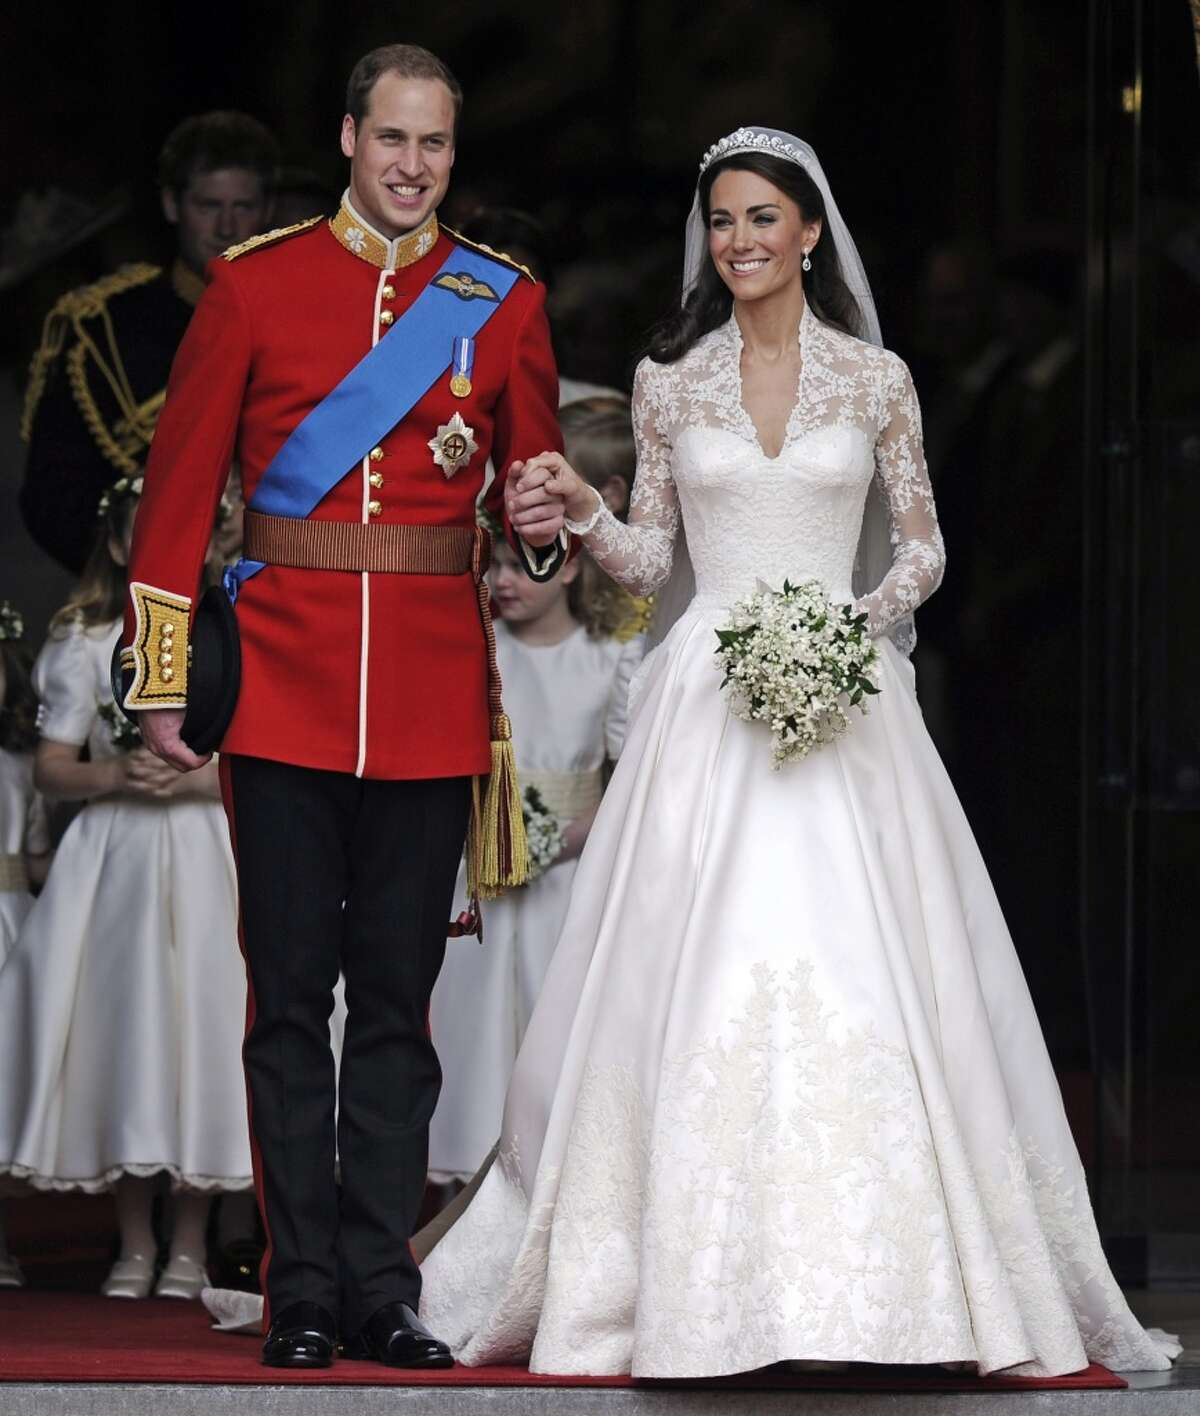 Britain's Prince William and his bride Kate, Duchess of Cambridge, leave Westminster Abbey, London, following their wedding in 2011.